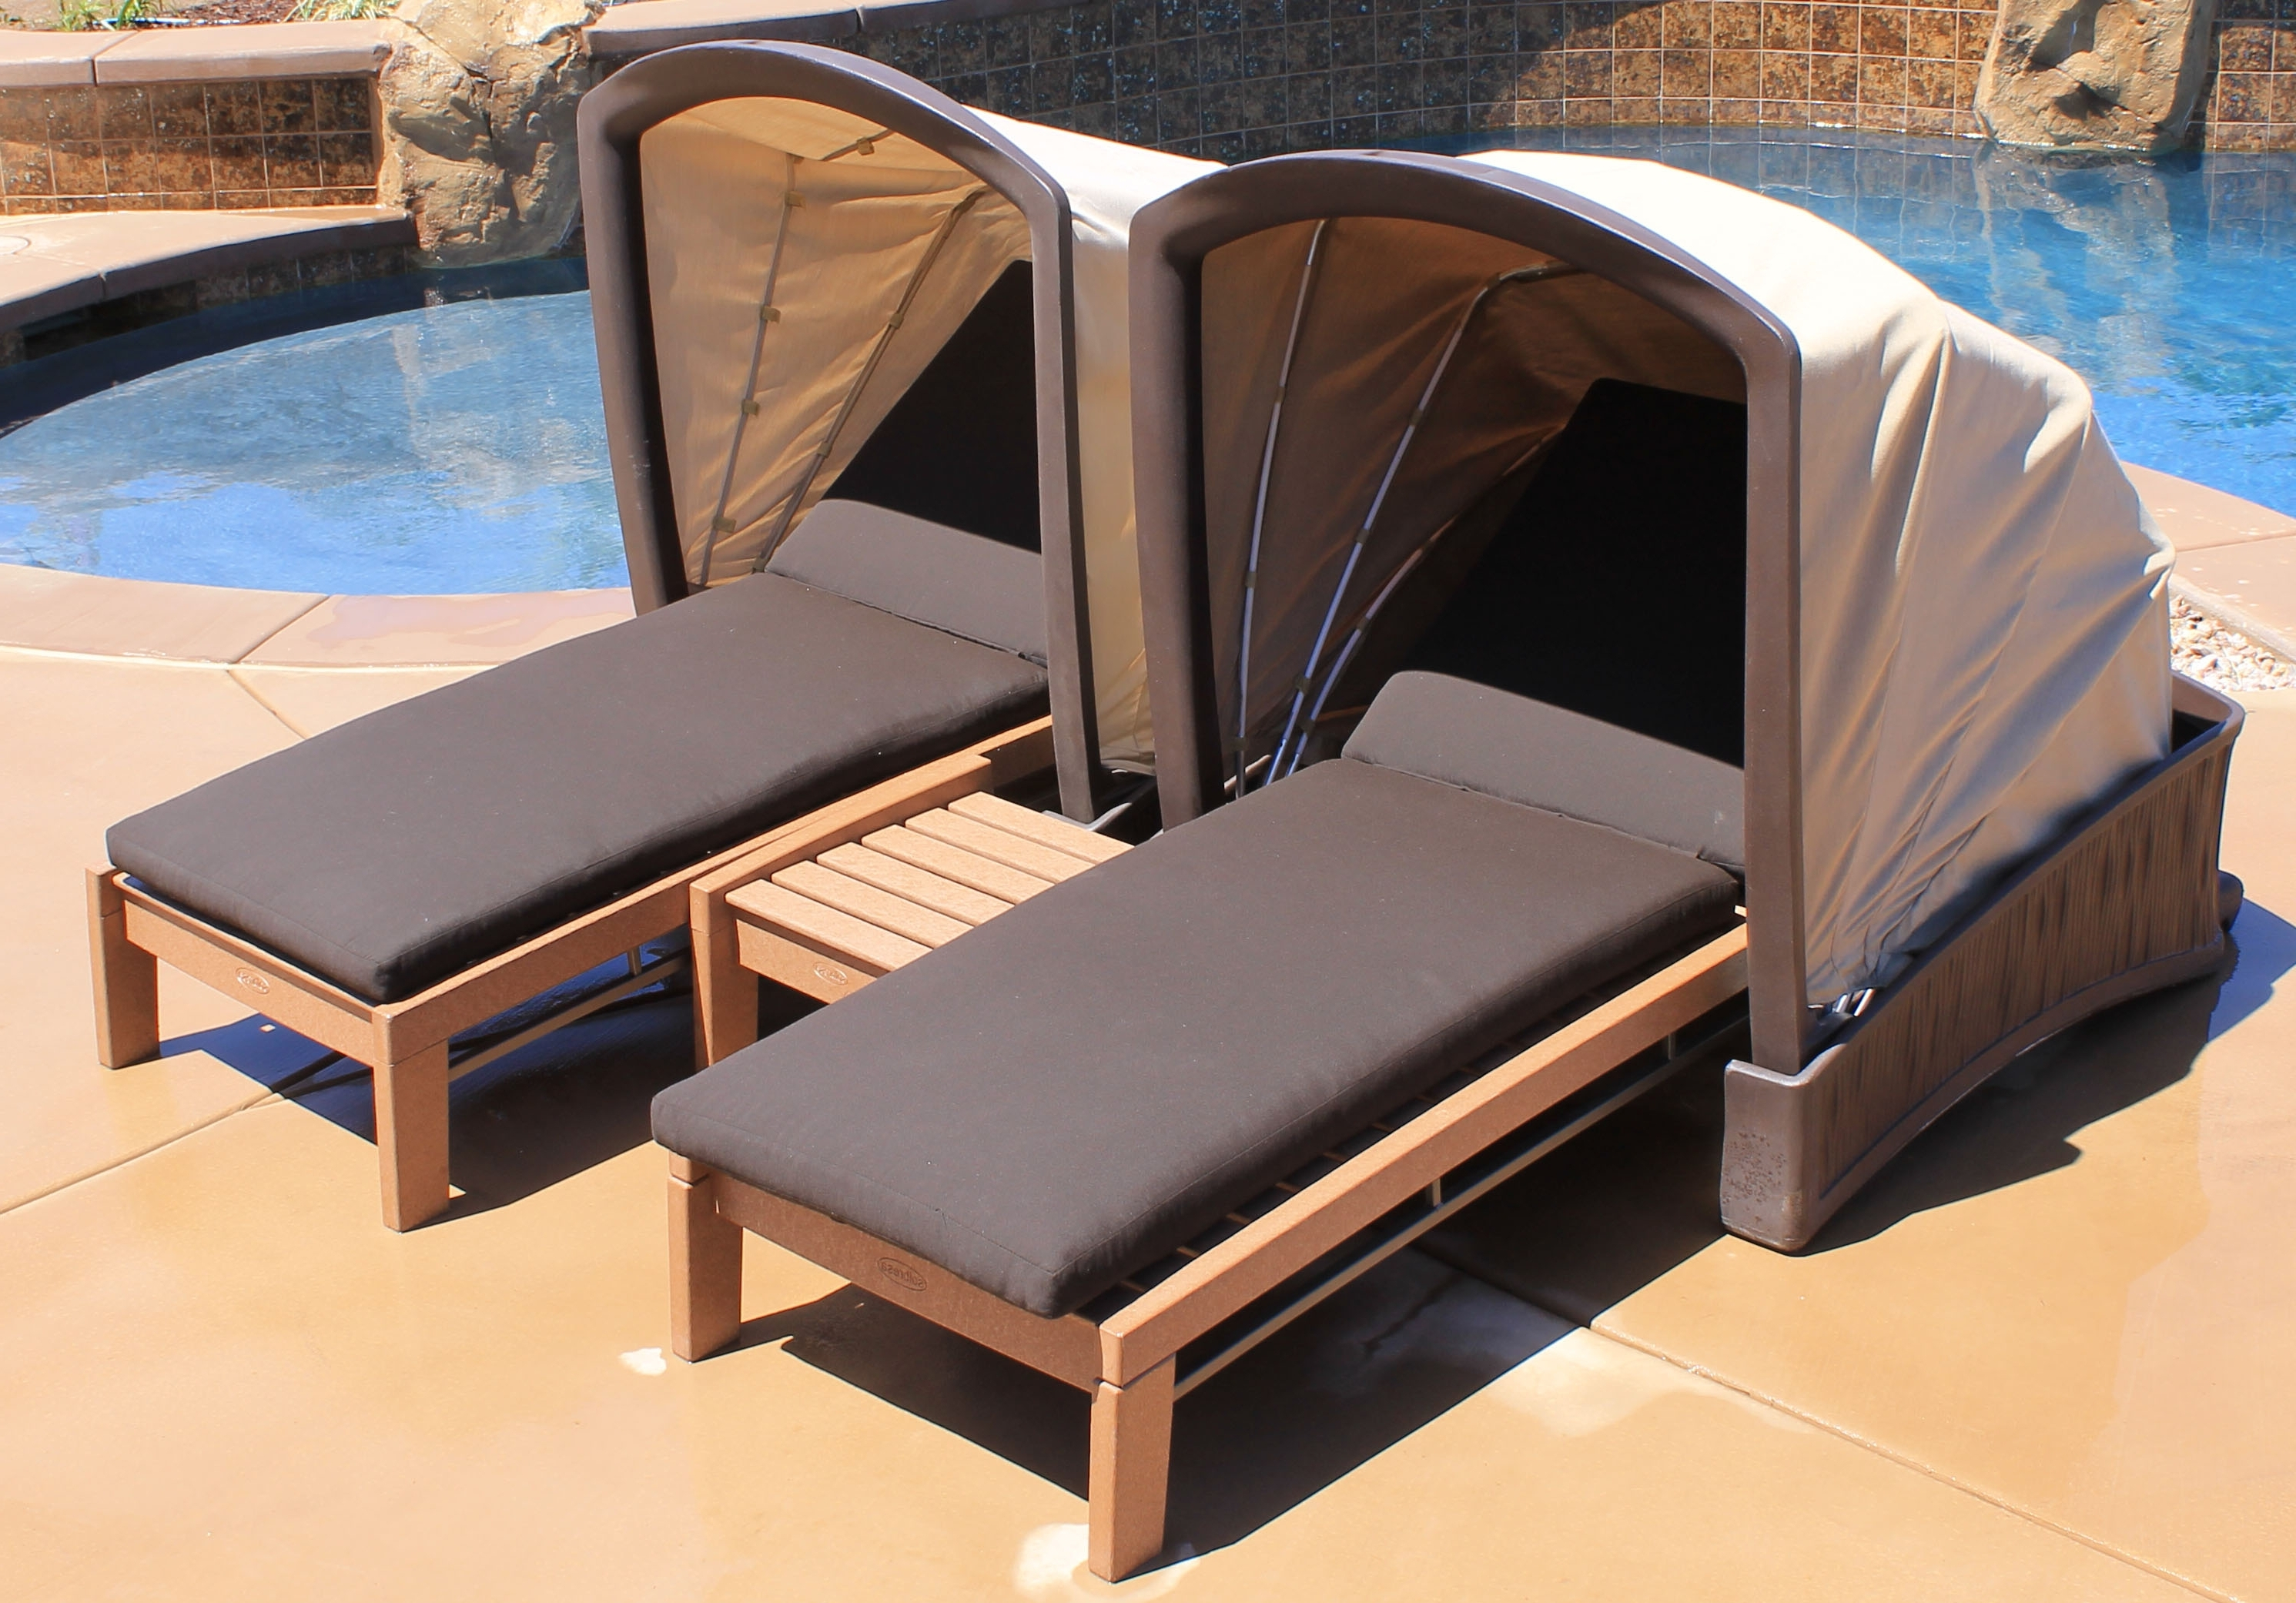 Fashionable Hotel Outdoor Lounge Chairs • Lounge Chairs Ideas For Hotel Pool Chaise Lounge Chairs (View 6 of 15)